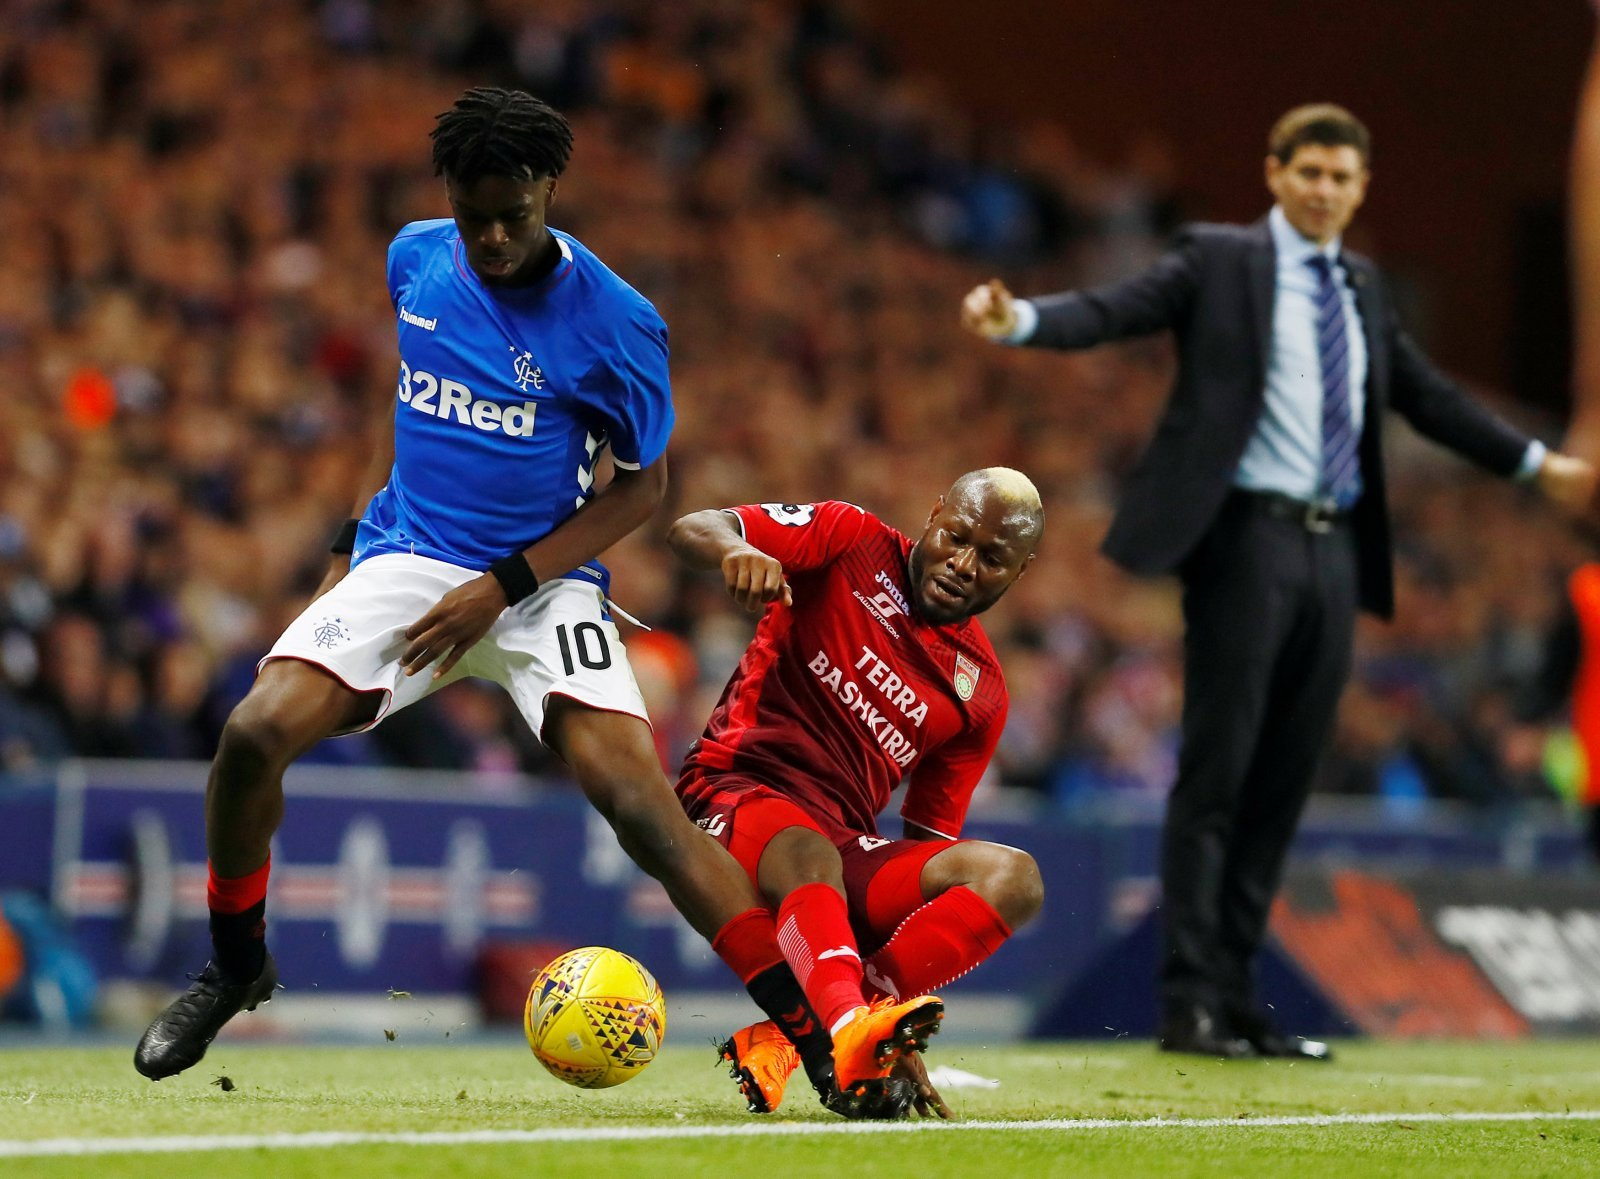 Liverpool: Ovie Ejaria secures season-long loan with Reading